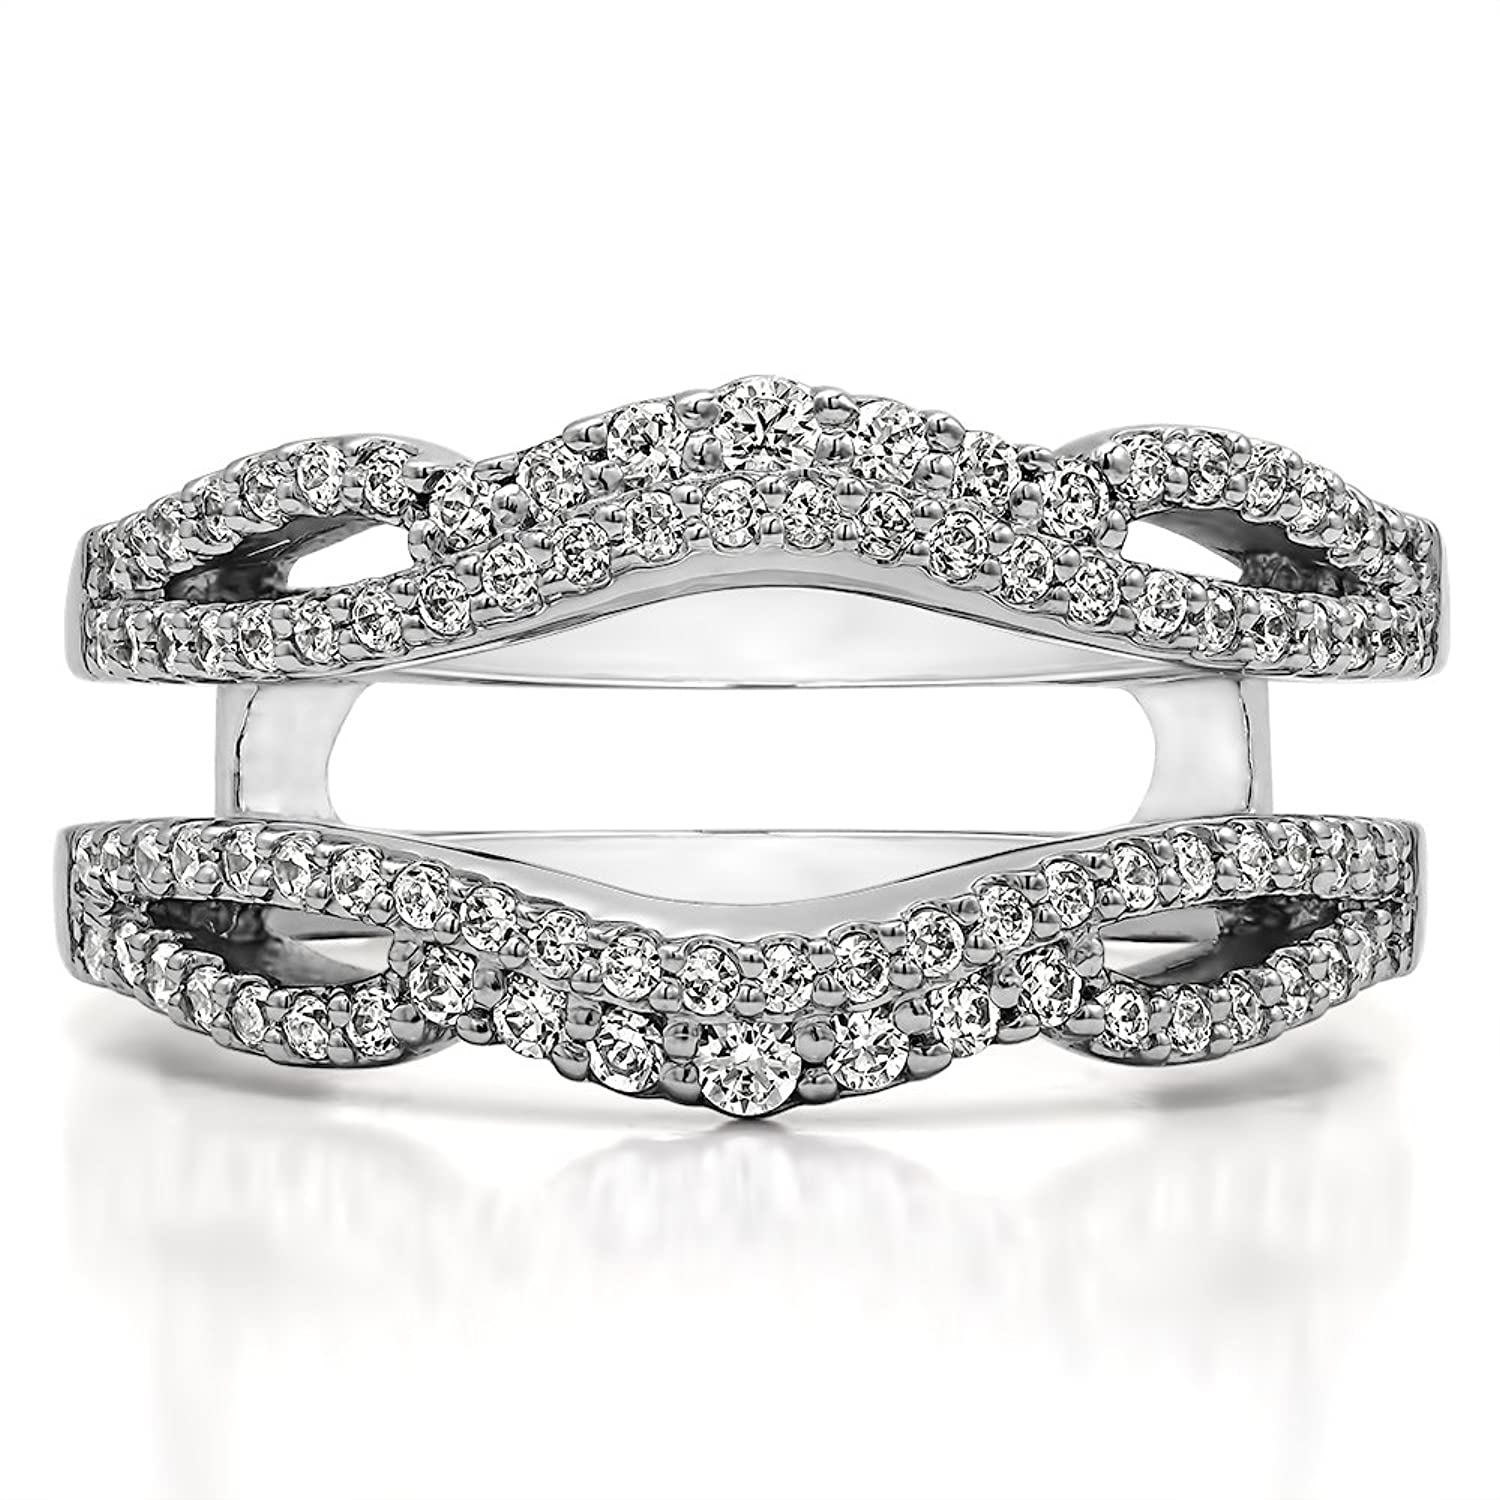 amazoncom sterling silver double infinity wedding ring guard enhancer with diamonds g hi2 i3 049 ct tw jewelry - Wedding Ring Guards